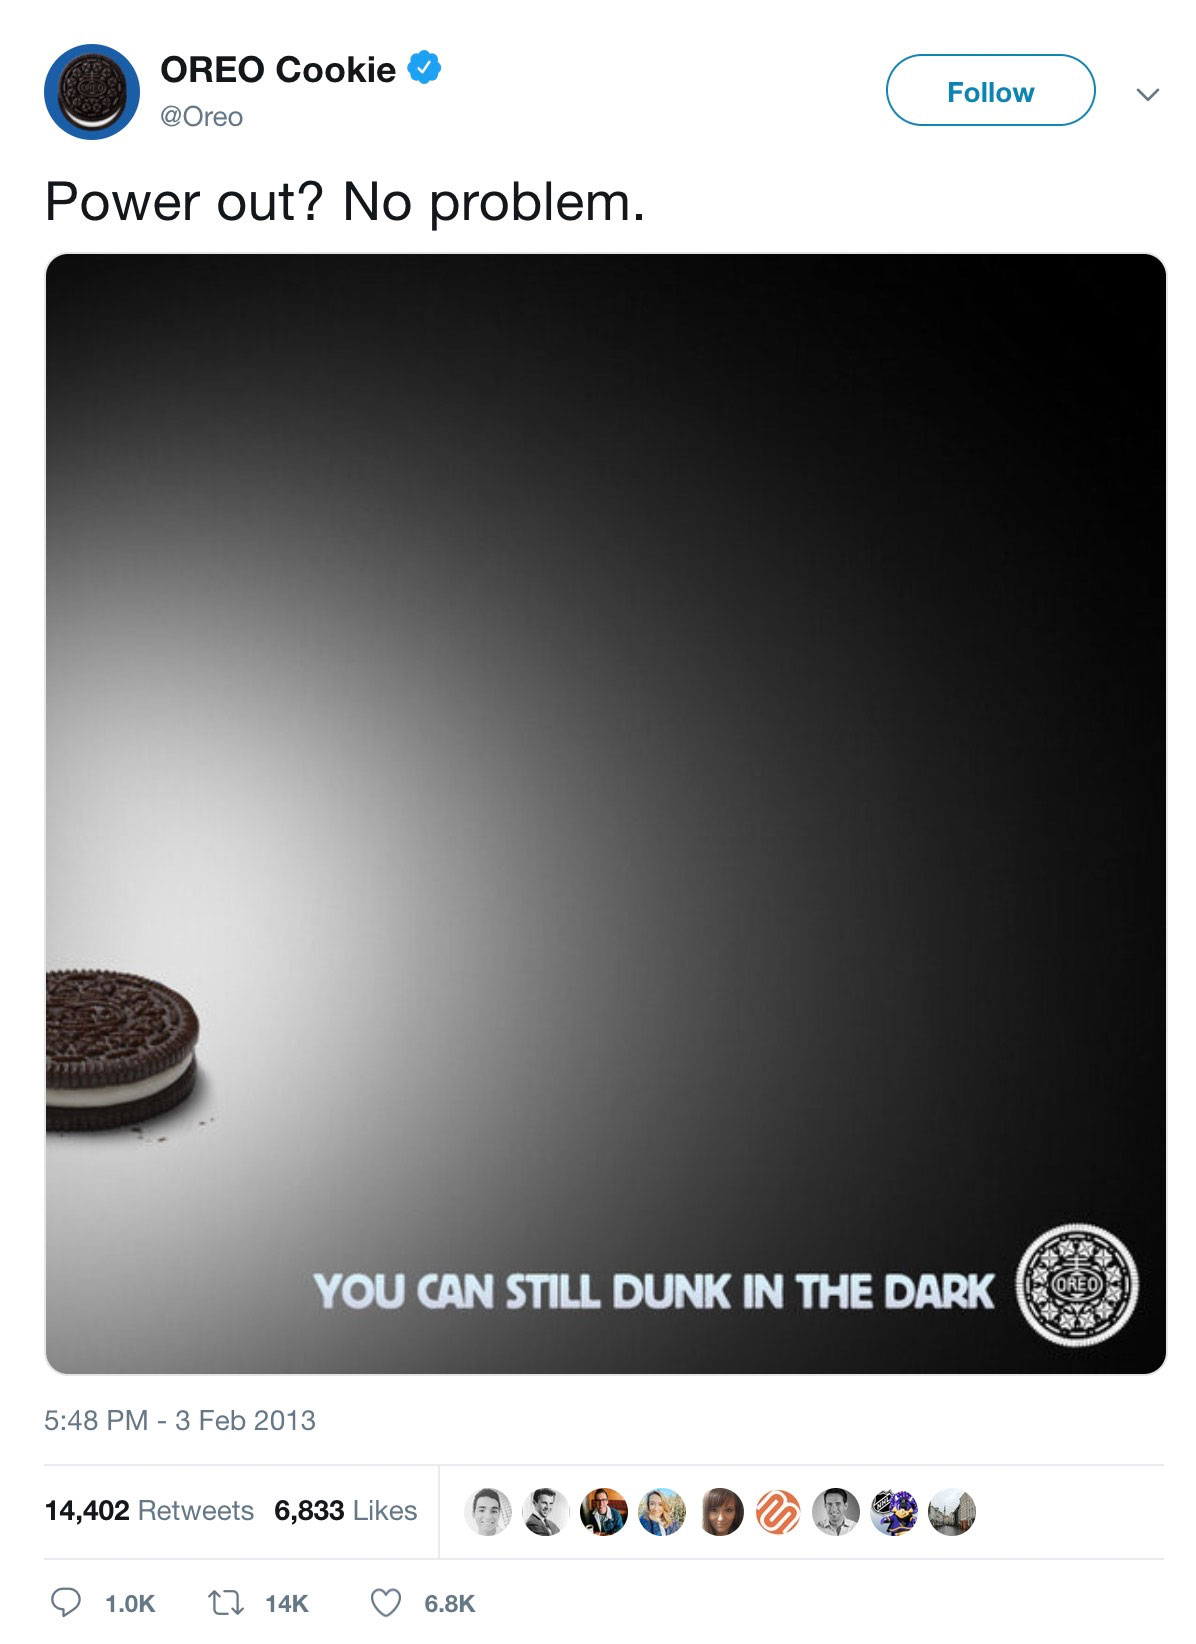 Oreo's famous Super Bowl power outage newsjacking.